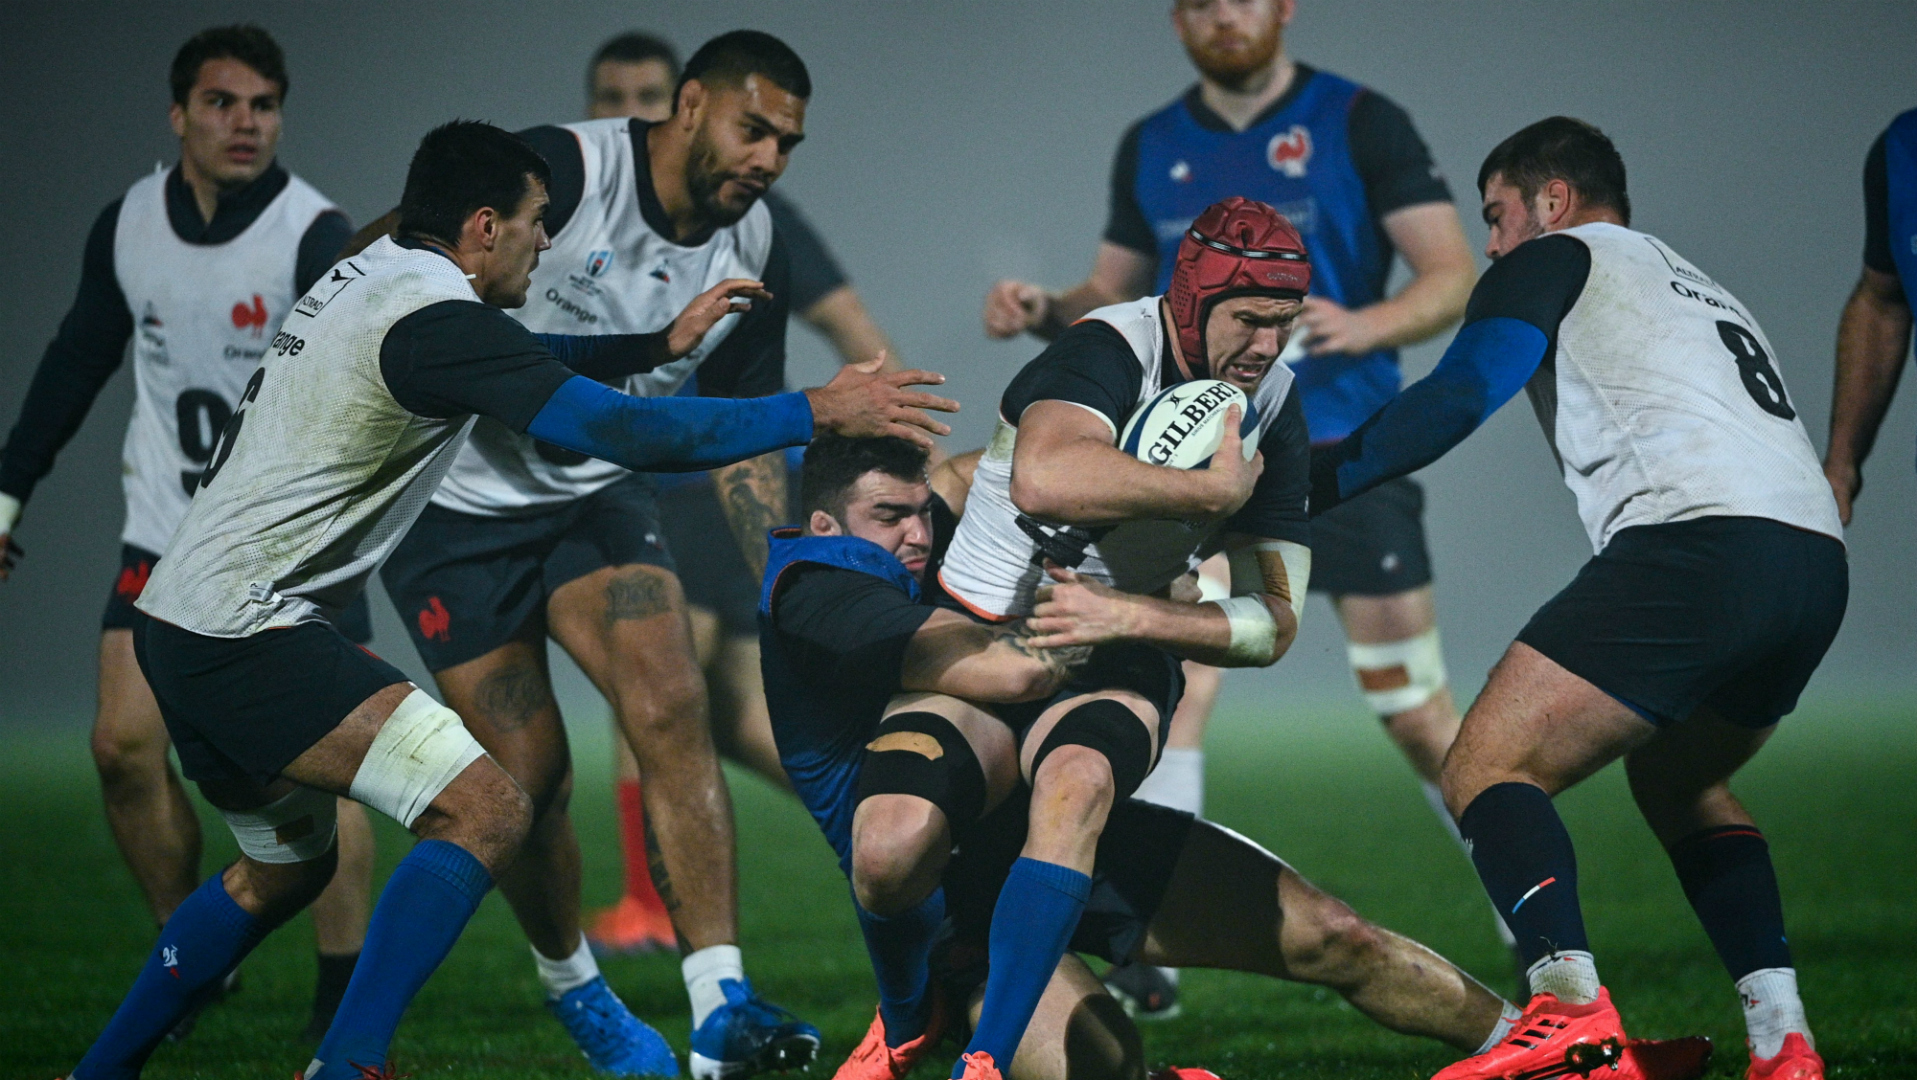 France awarded 28-0 win over Fiji in Autumn Nations Cup